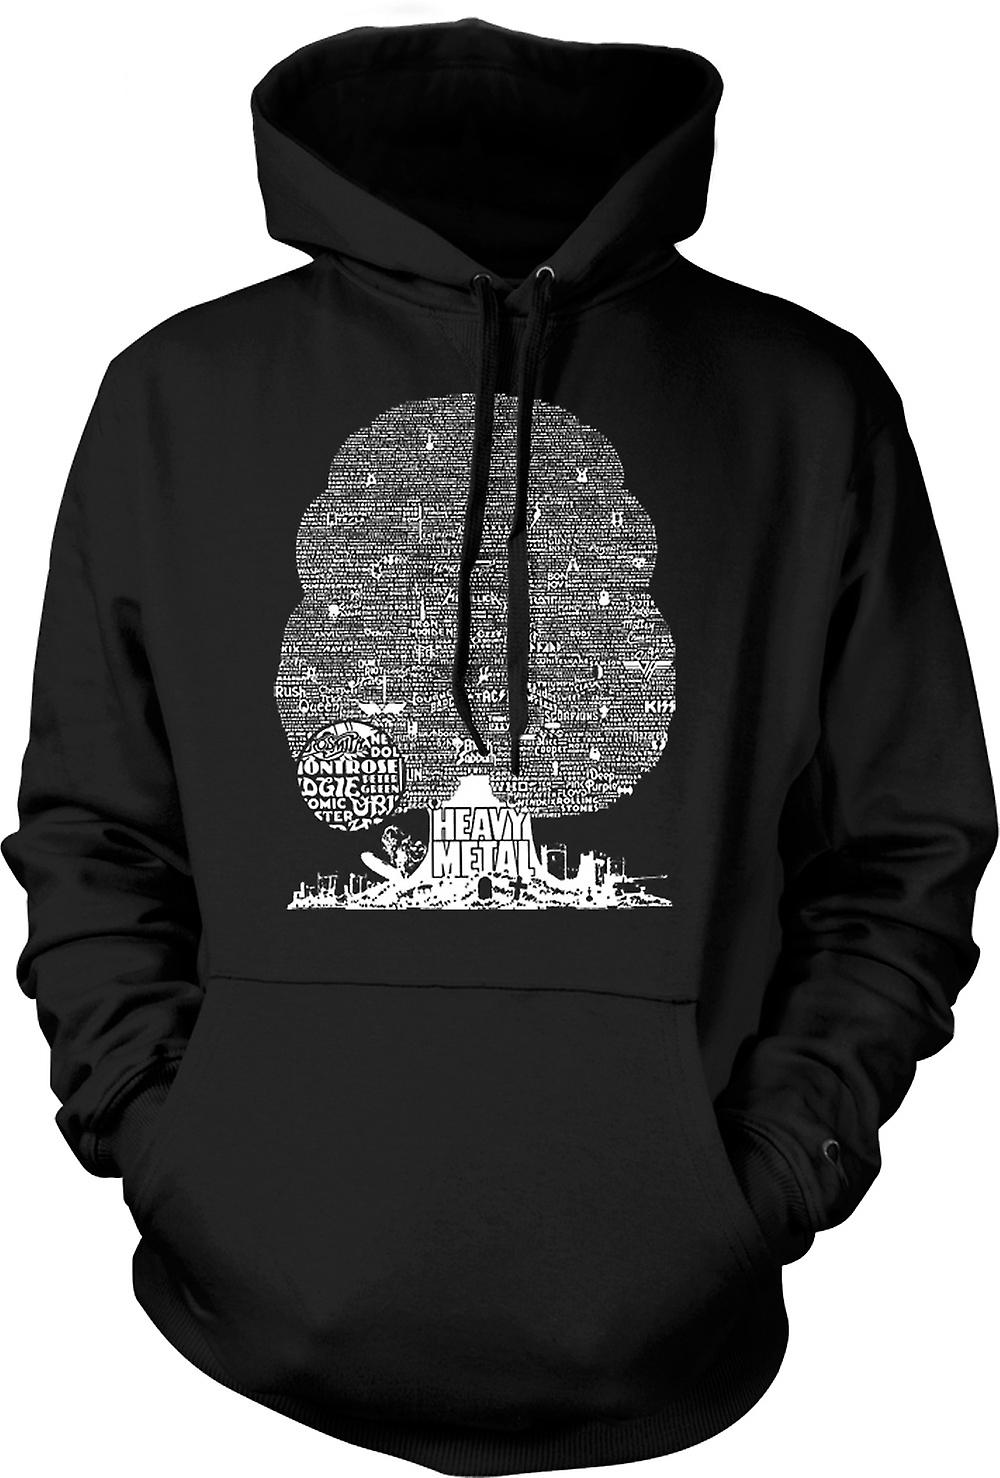 Mens Hoodie - Heavy Metal - Tree Of Life